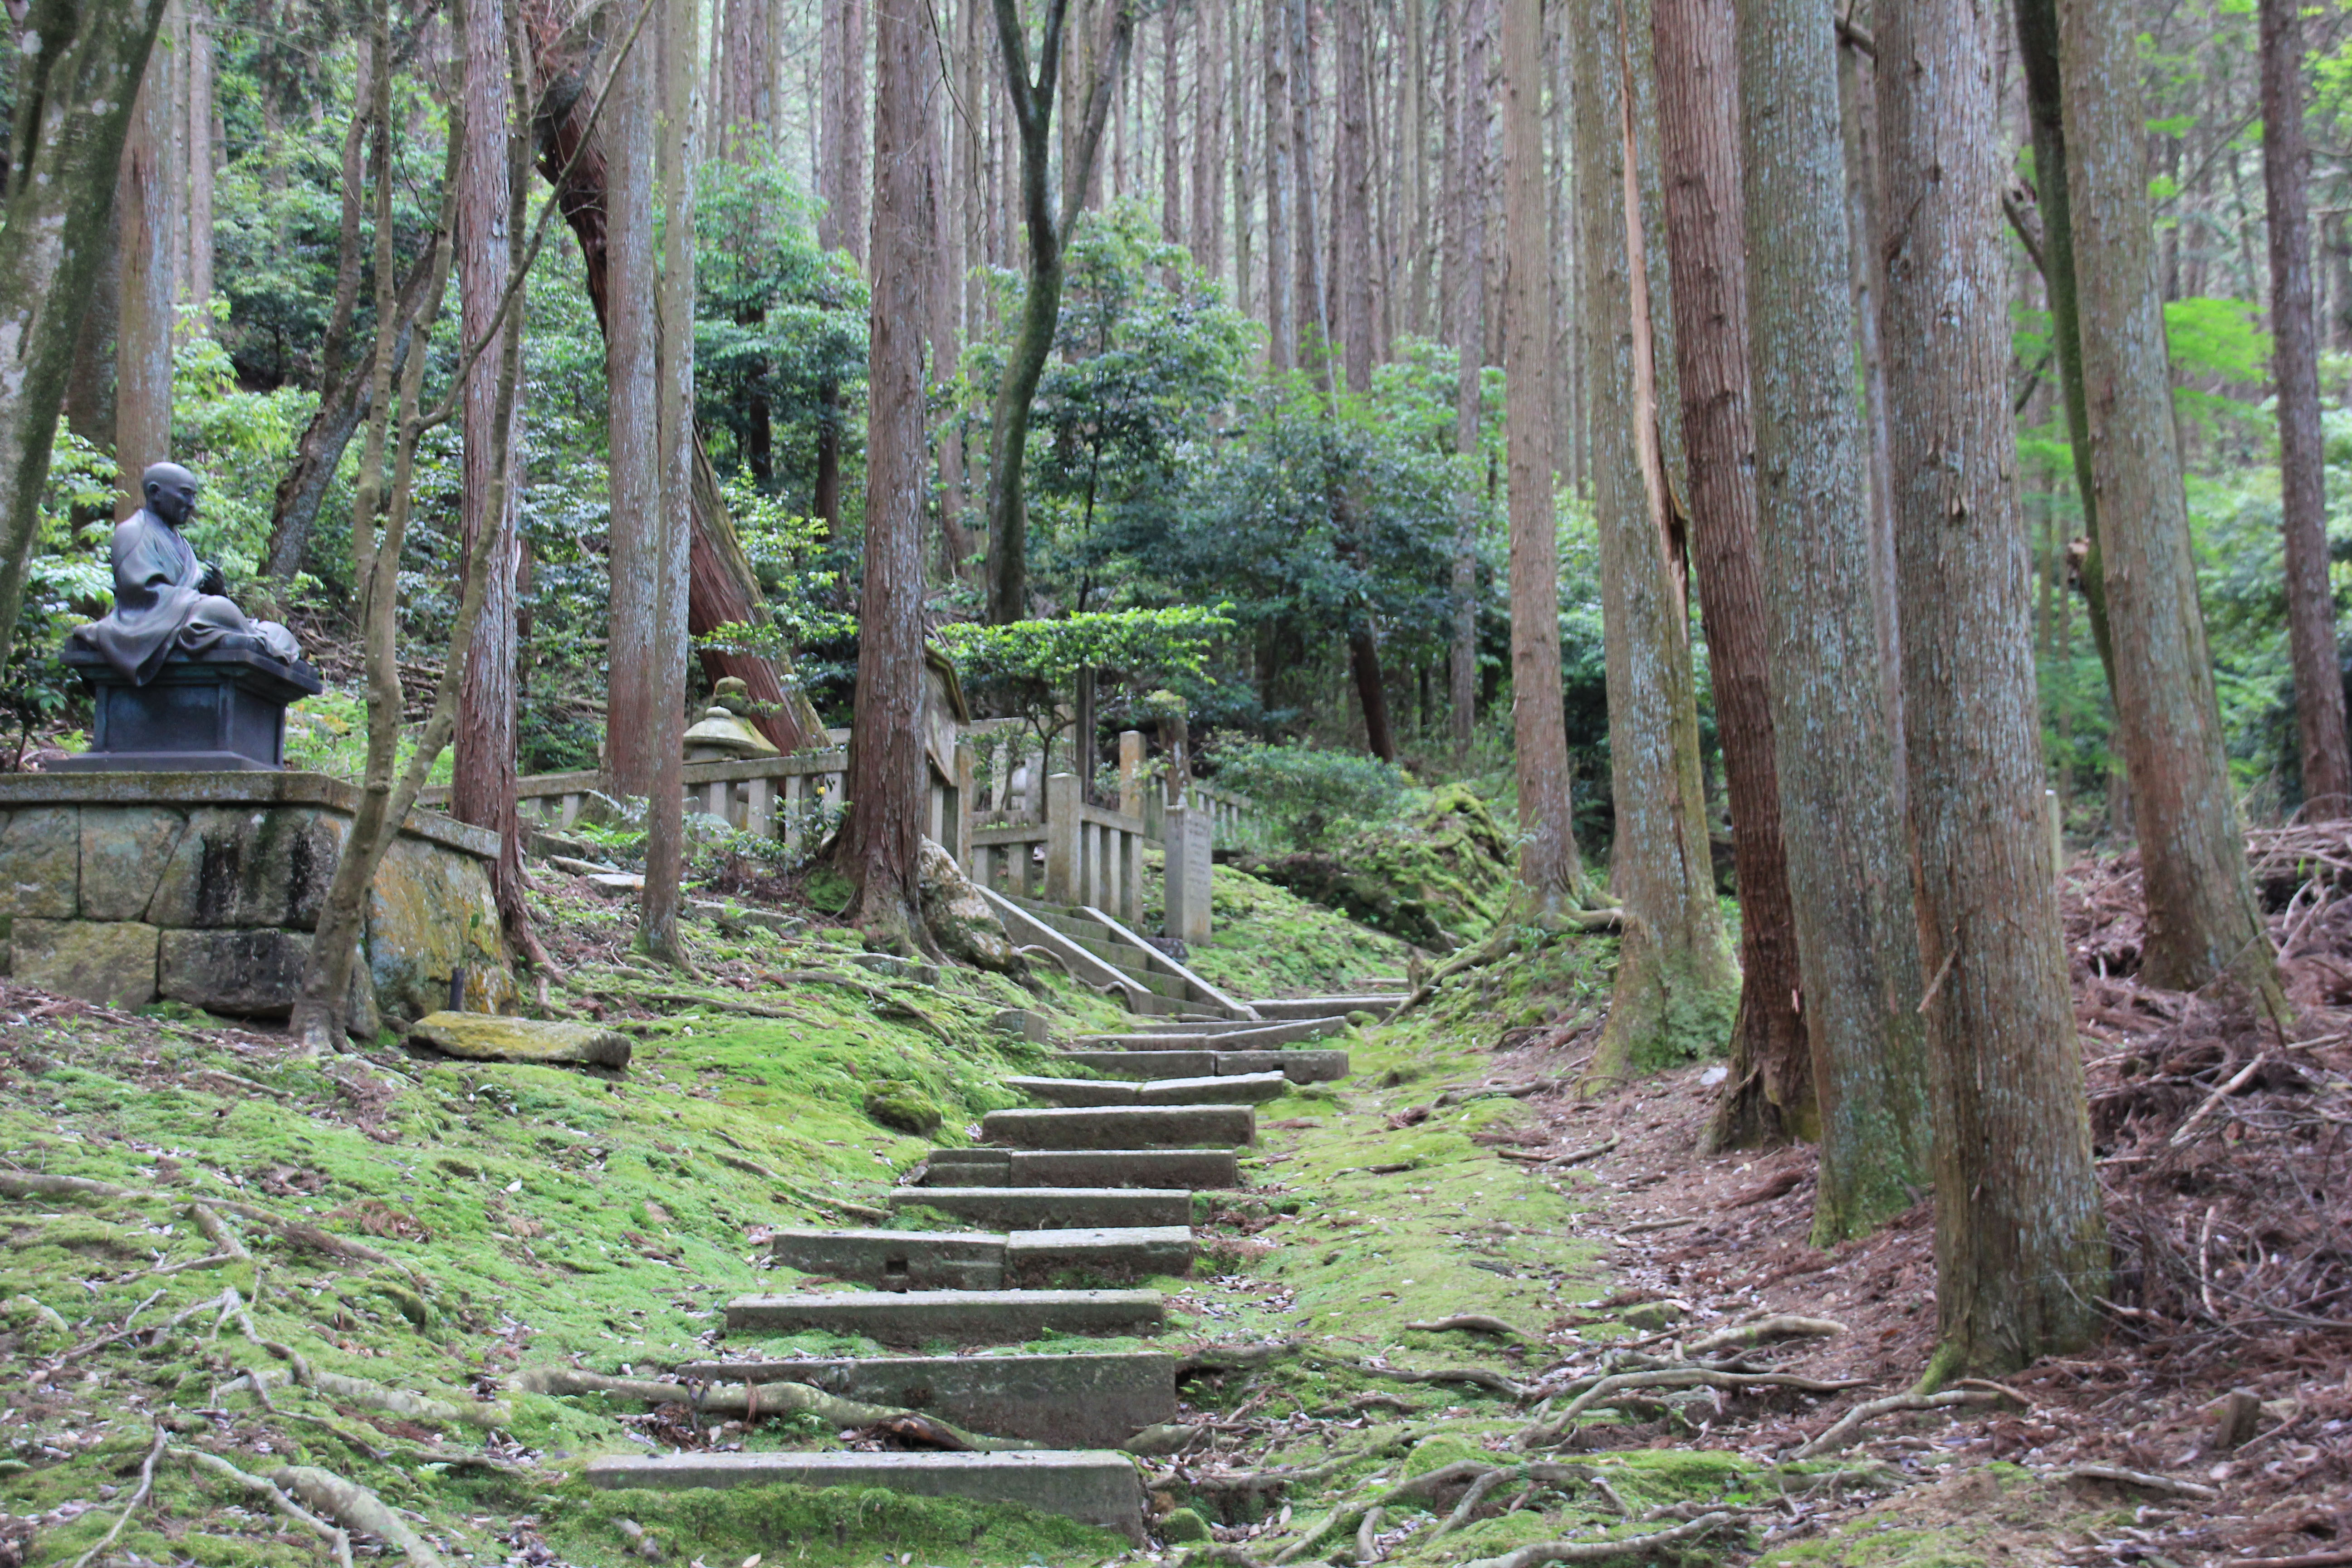 A beautiful scene of the landscapes of Japan